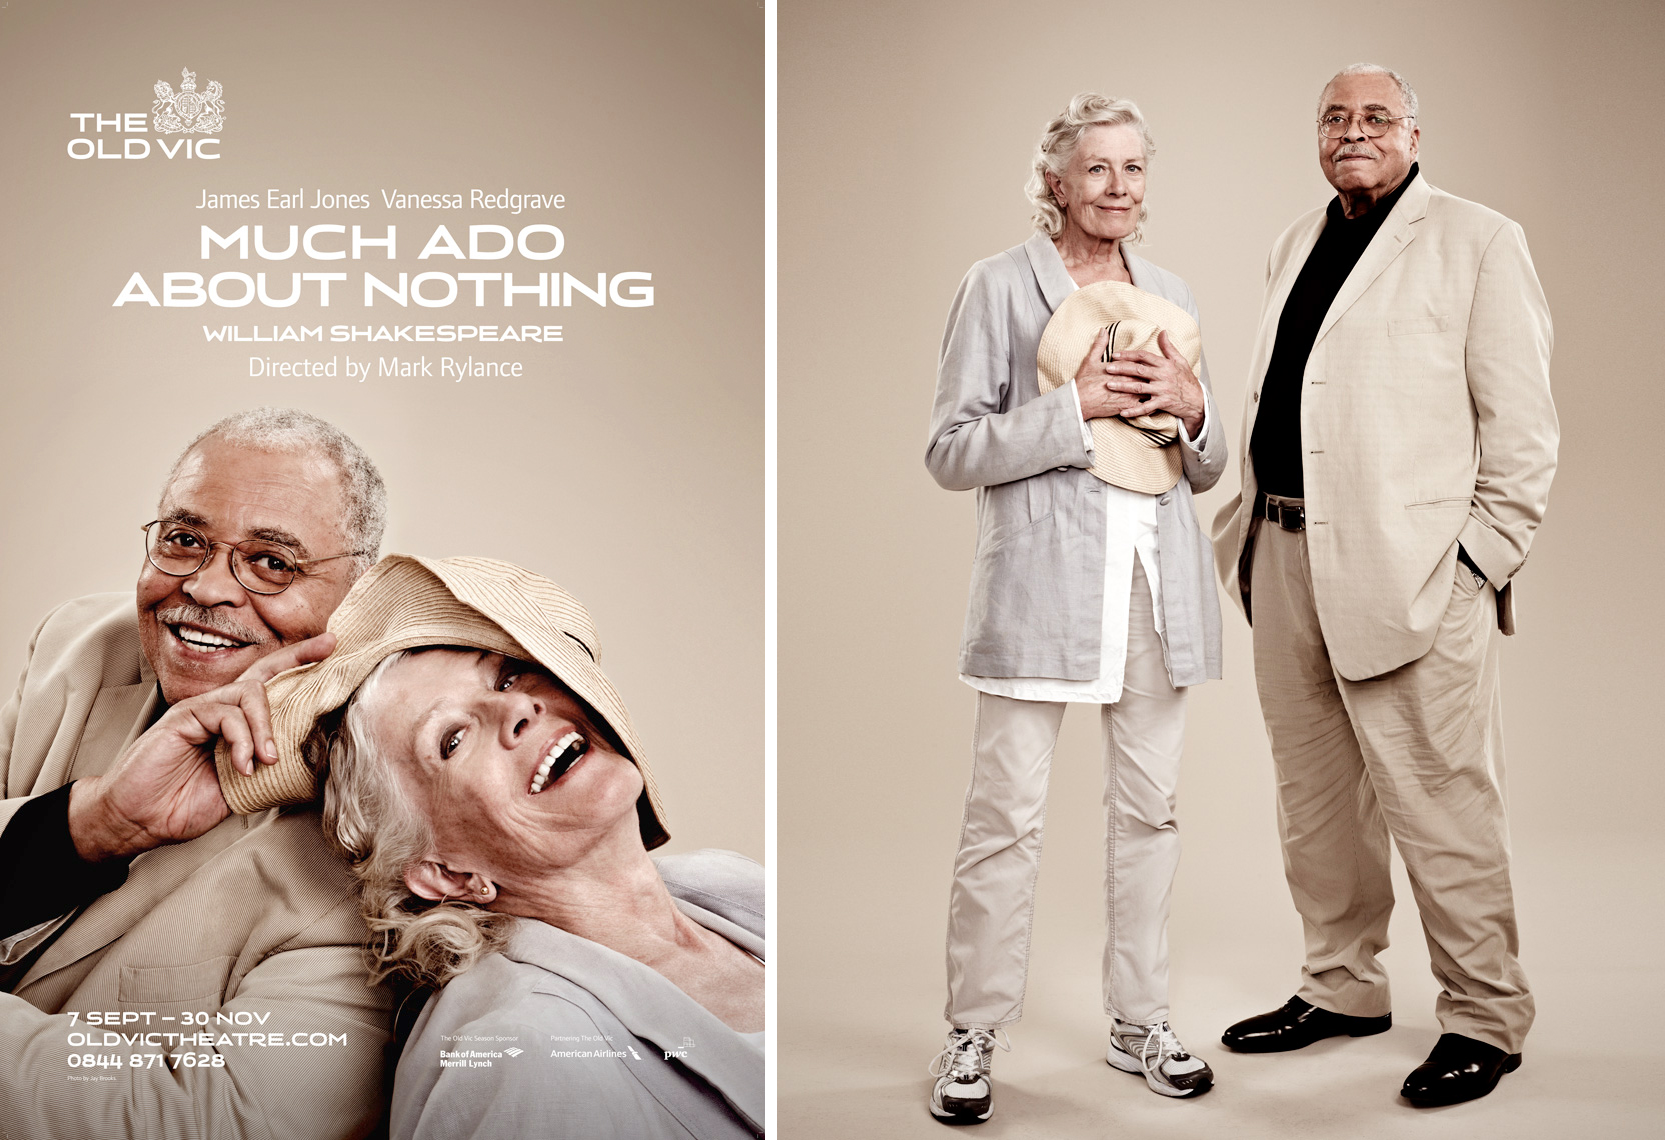 Much Ado / The Old Vic